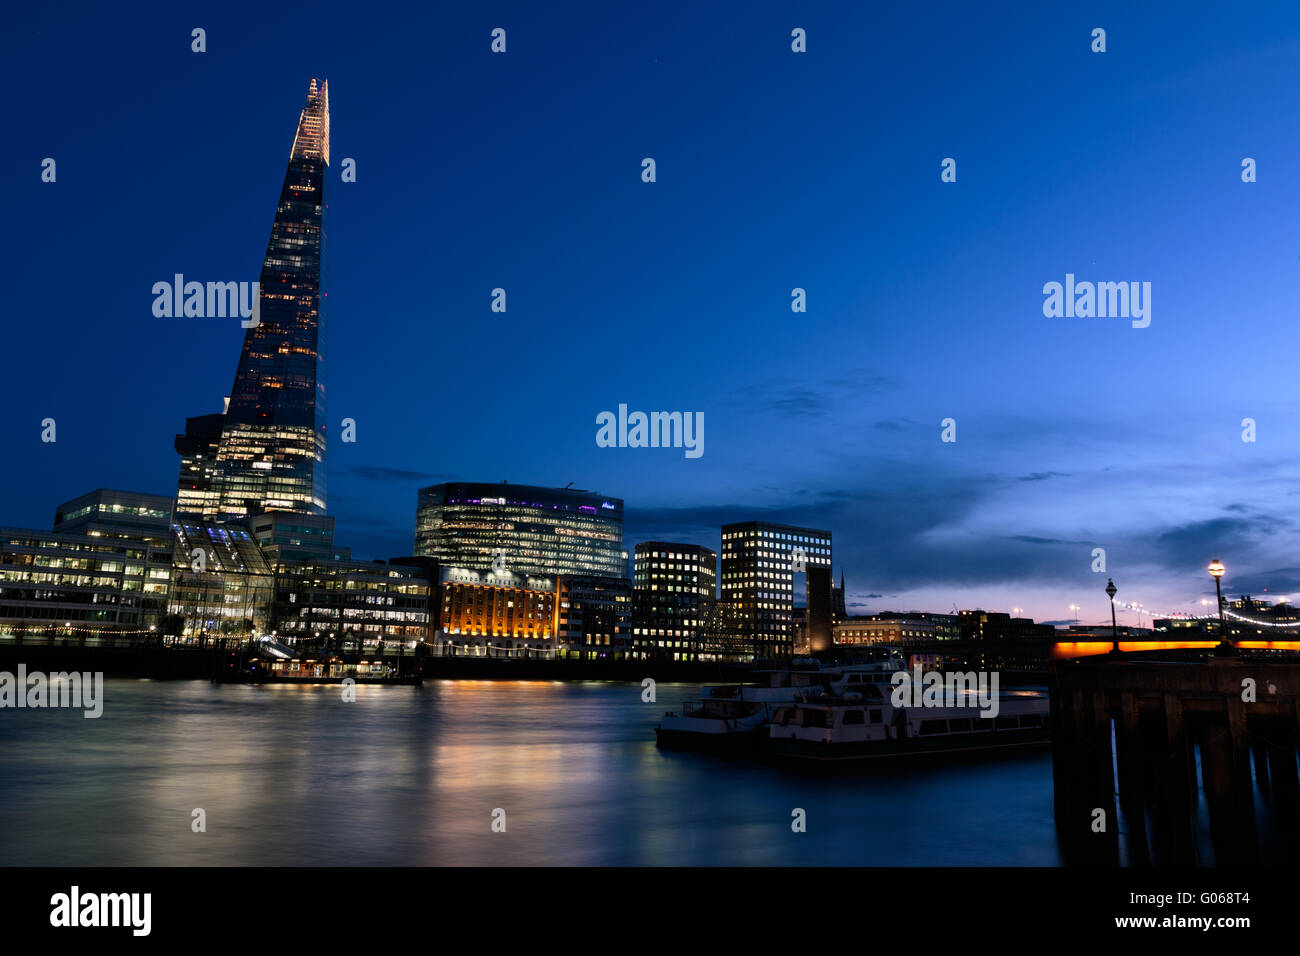 Sunset on the London skyline showing The Shard and Thames - Stock Image